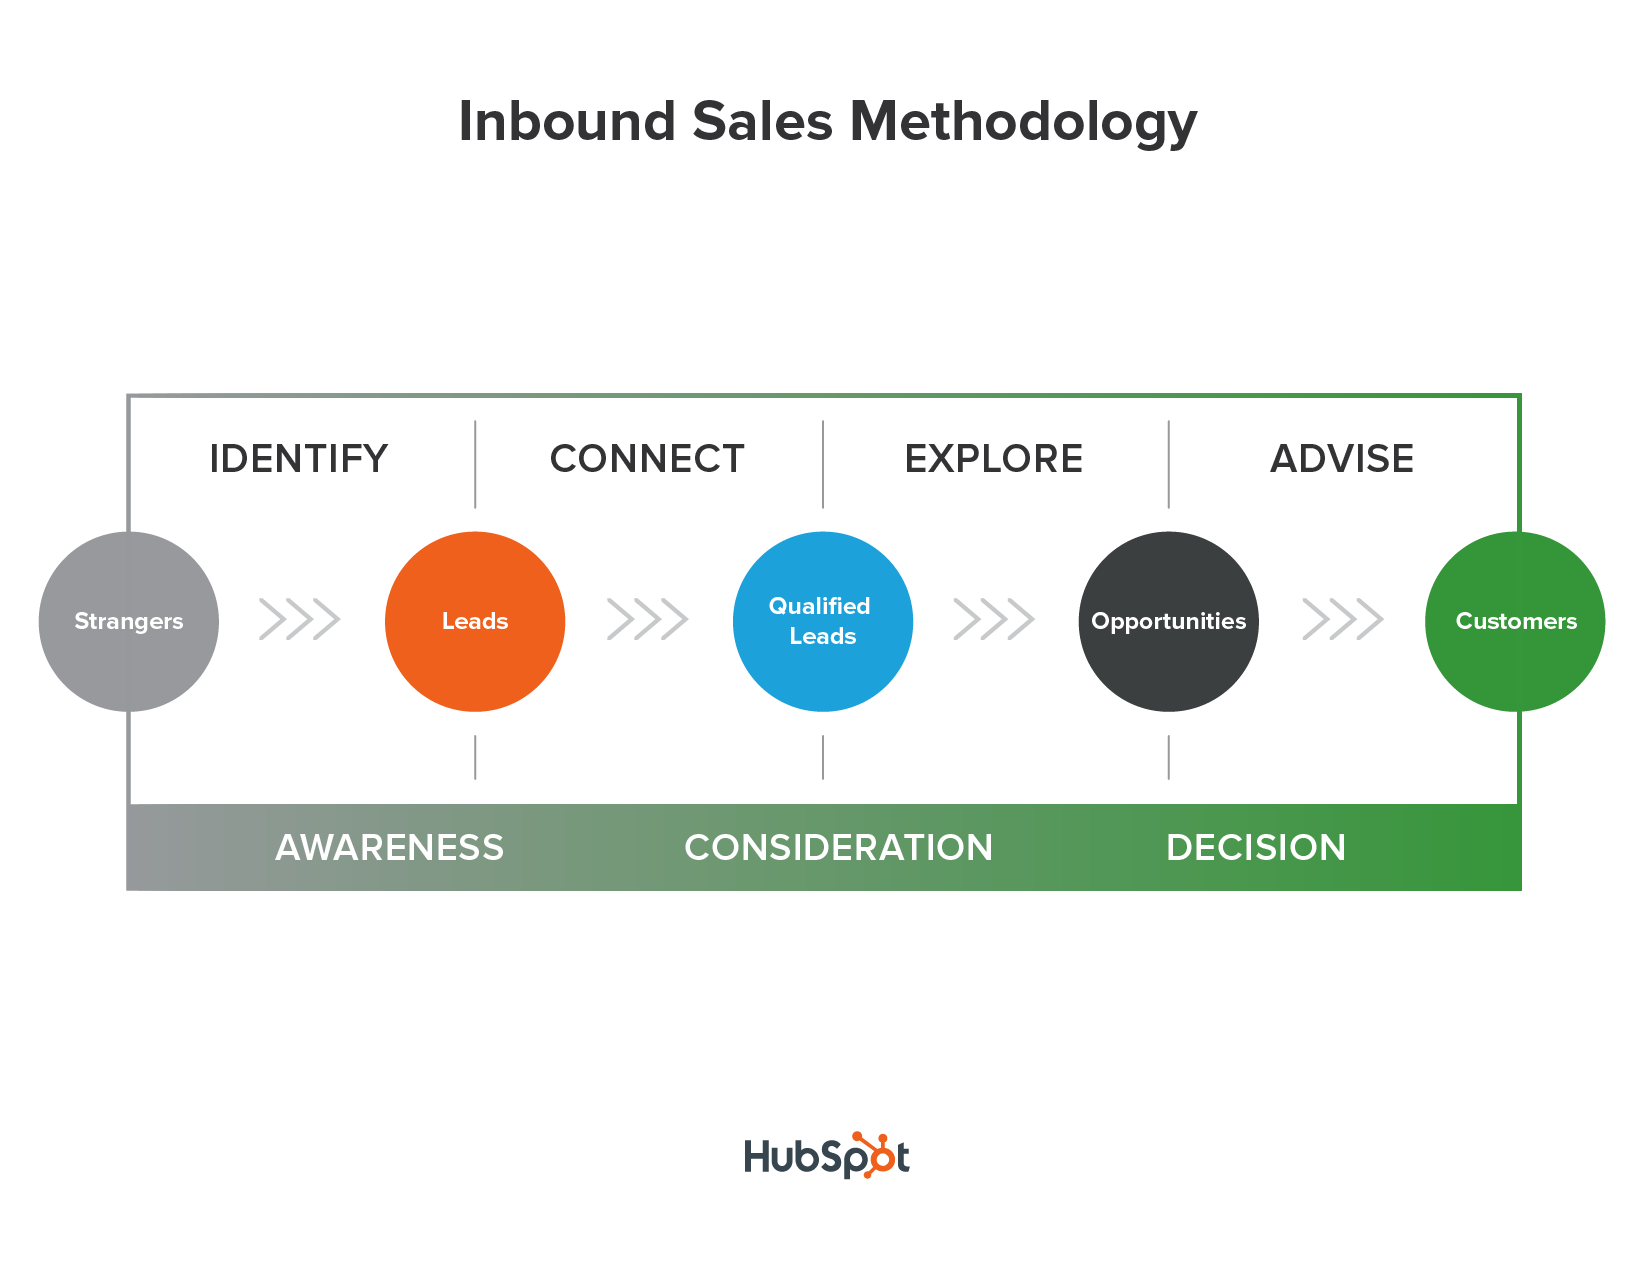 hubspot-inbound-sales-method